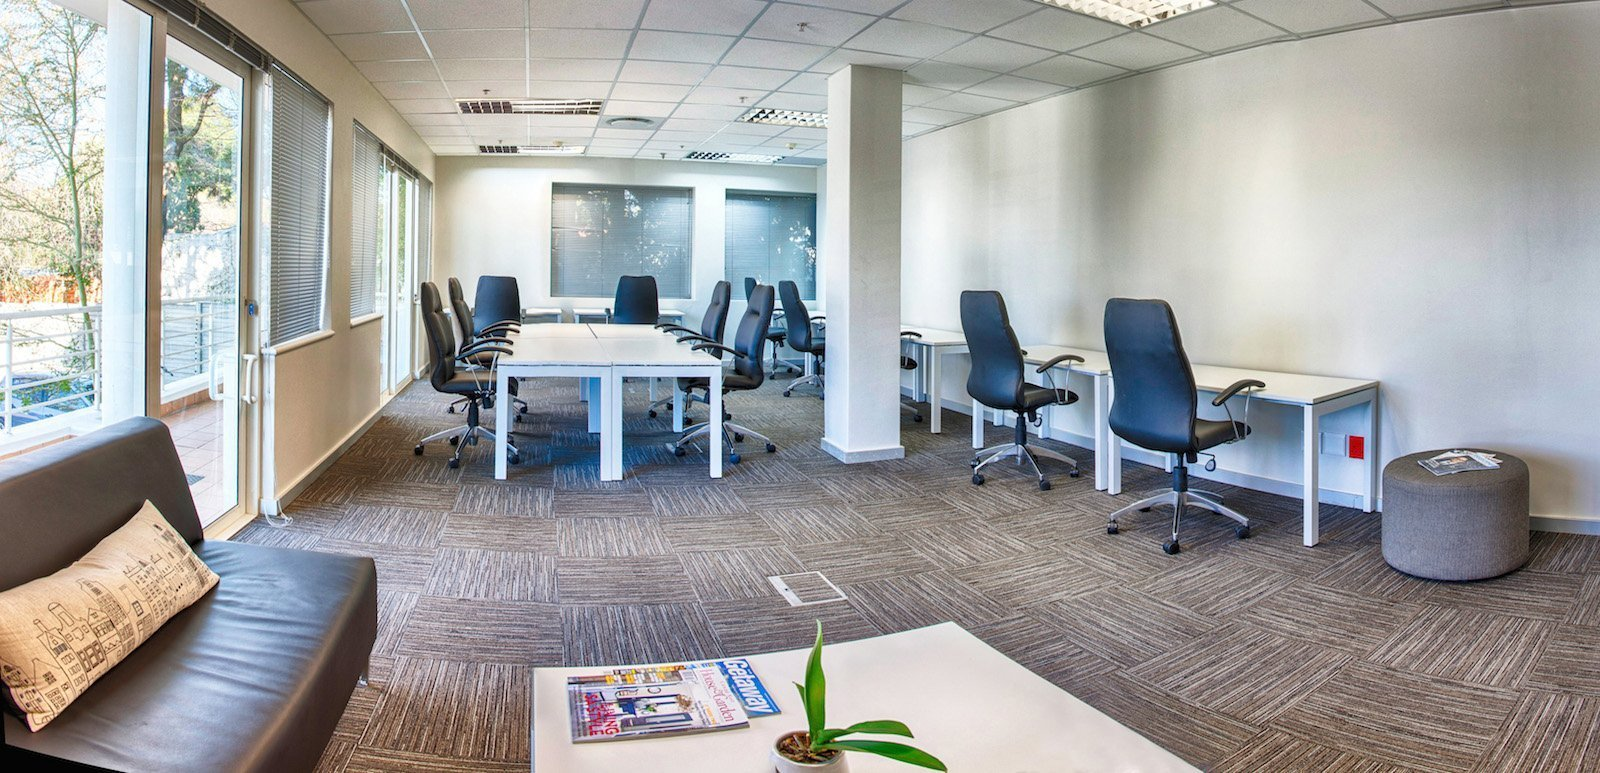 Jersey City Coworking Space